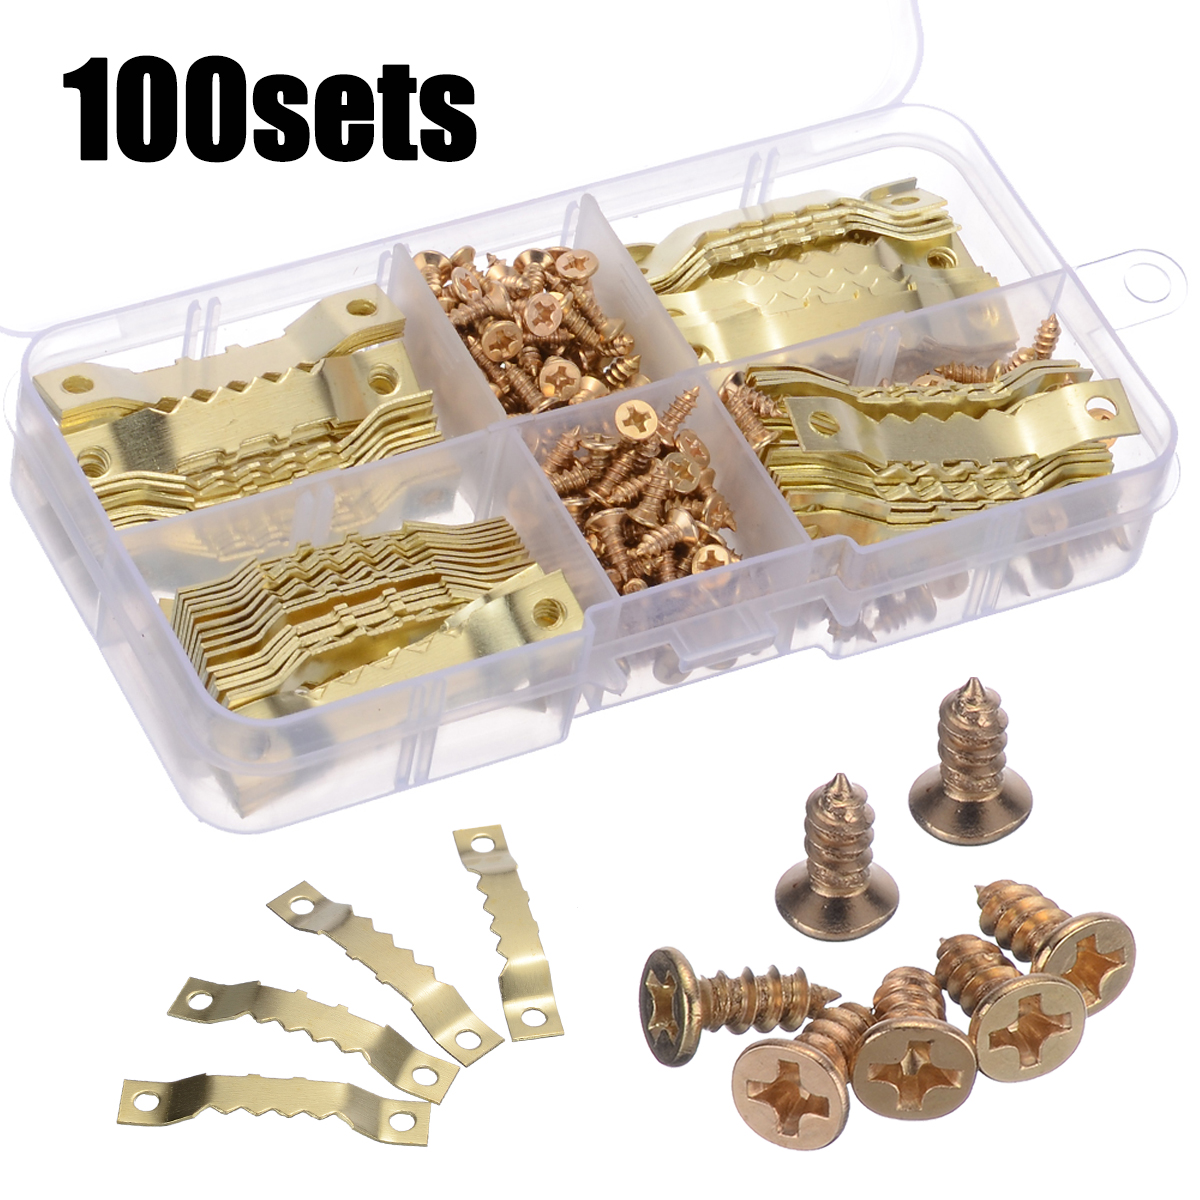 100 Sets 45*8mm Gold Saw Tooth Hangers Canvas Picture Frame Hooks + Screws Sawtooth Hangers For Hanging Picture Painting Mirror